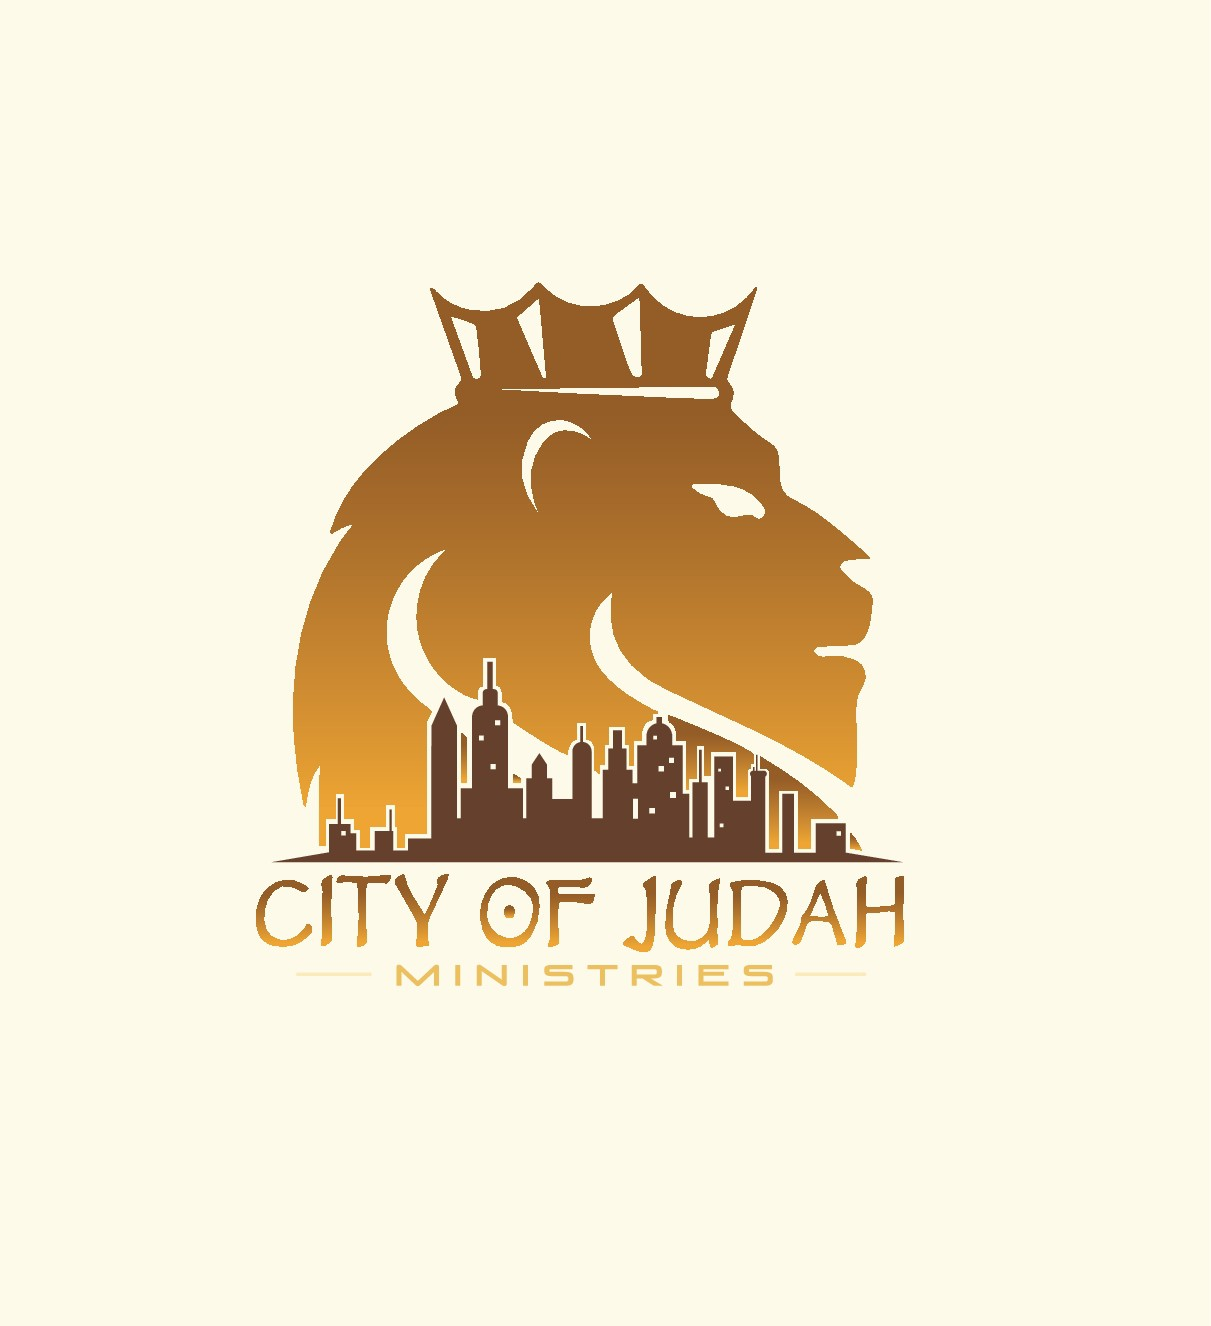 City of Judah Ministries